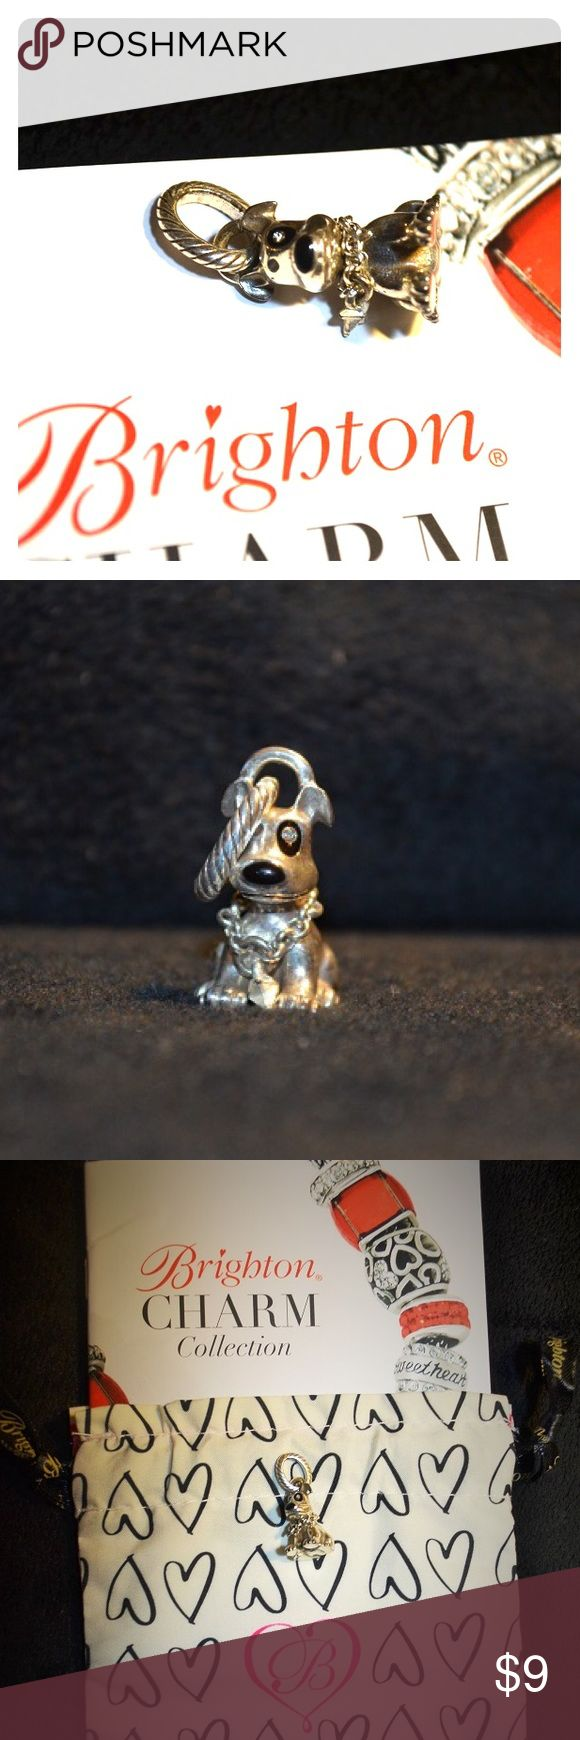 Brighton dog charm Brighton dog charm. Comes with Brighton drawstring bag & booklet. Jewelry